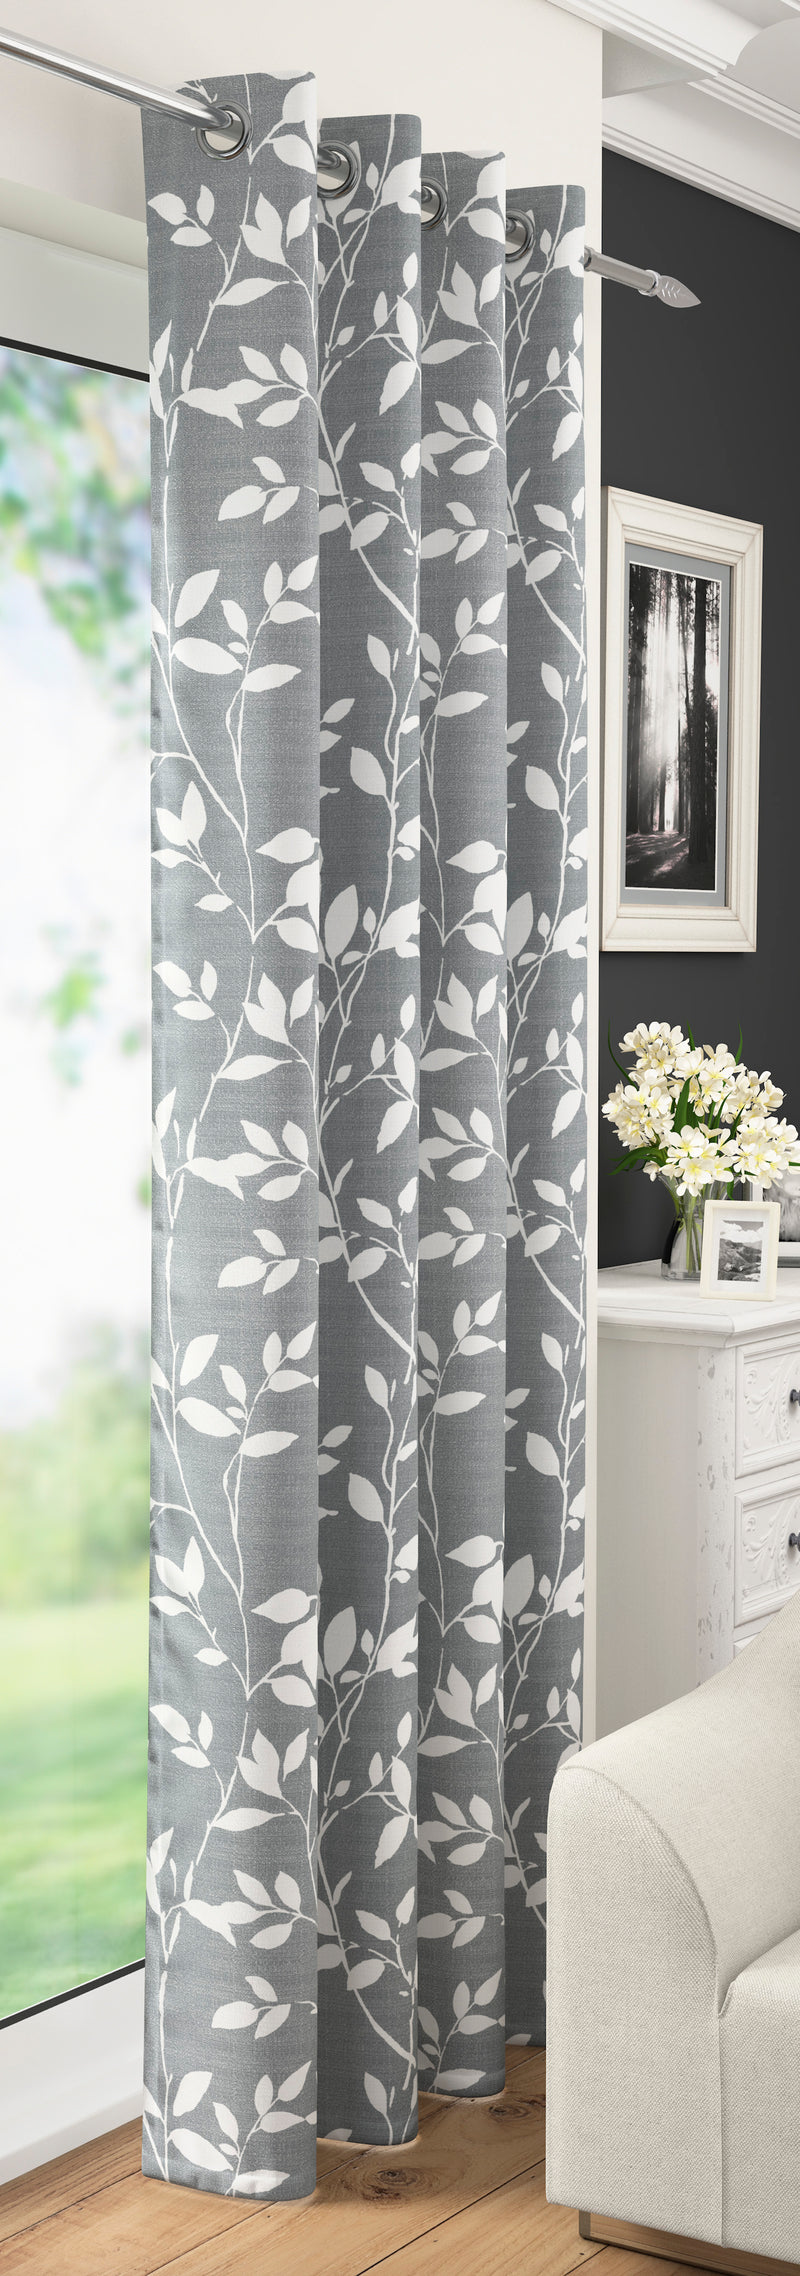 Grey Laurel Floral Leaf Voile Leaves Voile Net Curtain Eyelet Ring Top Single Panel